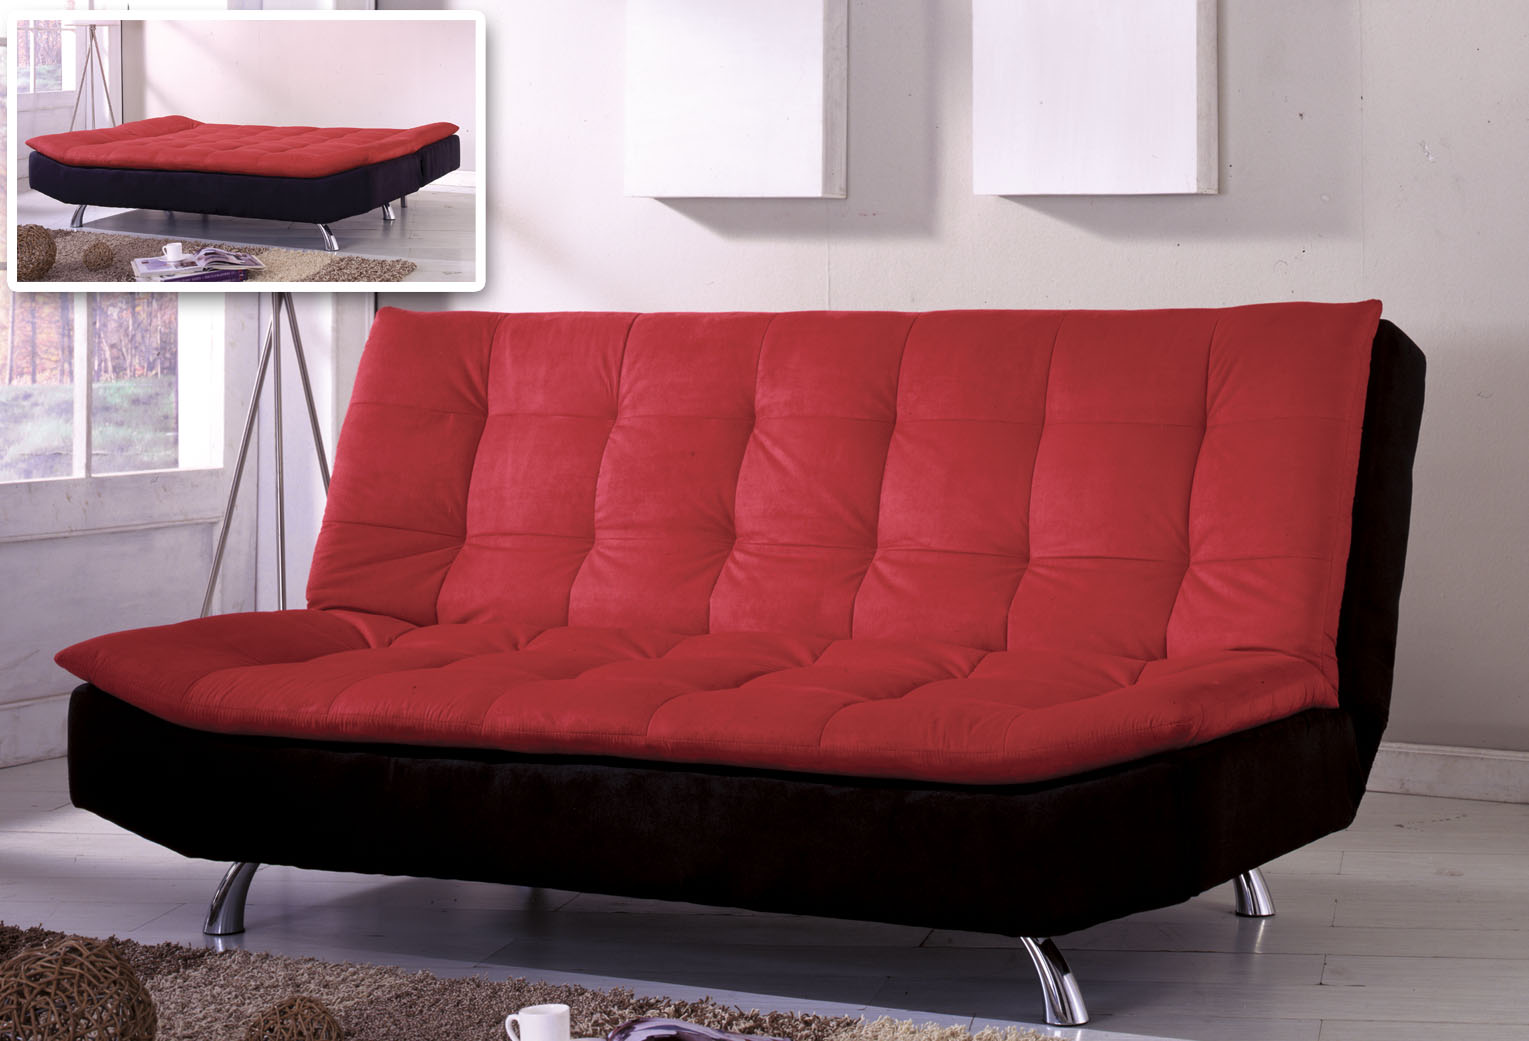 Futon Couch Bed 6451 : Futon Couch Bed from qnud.com size 1529 x 1041 jpeg 158kB